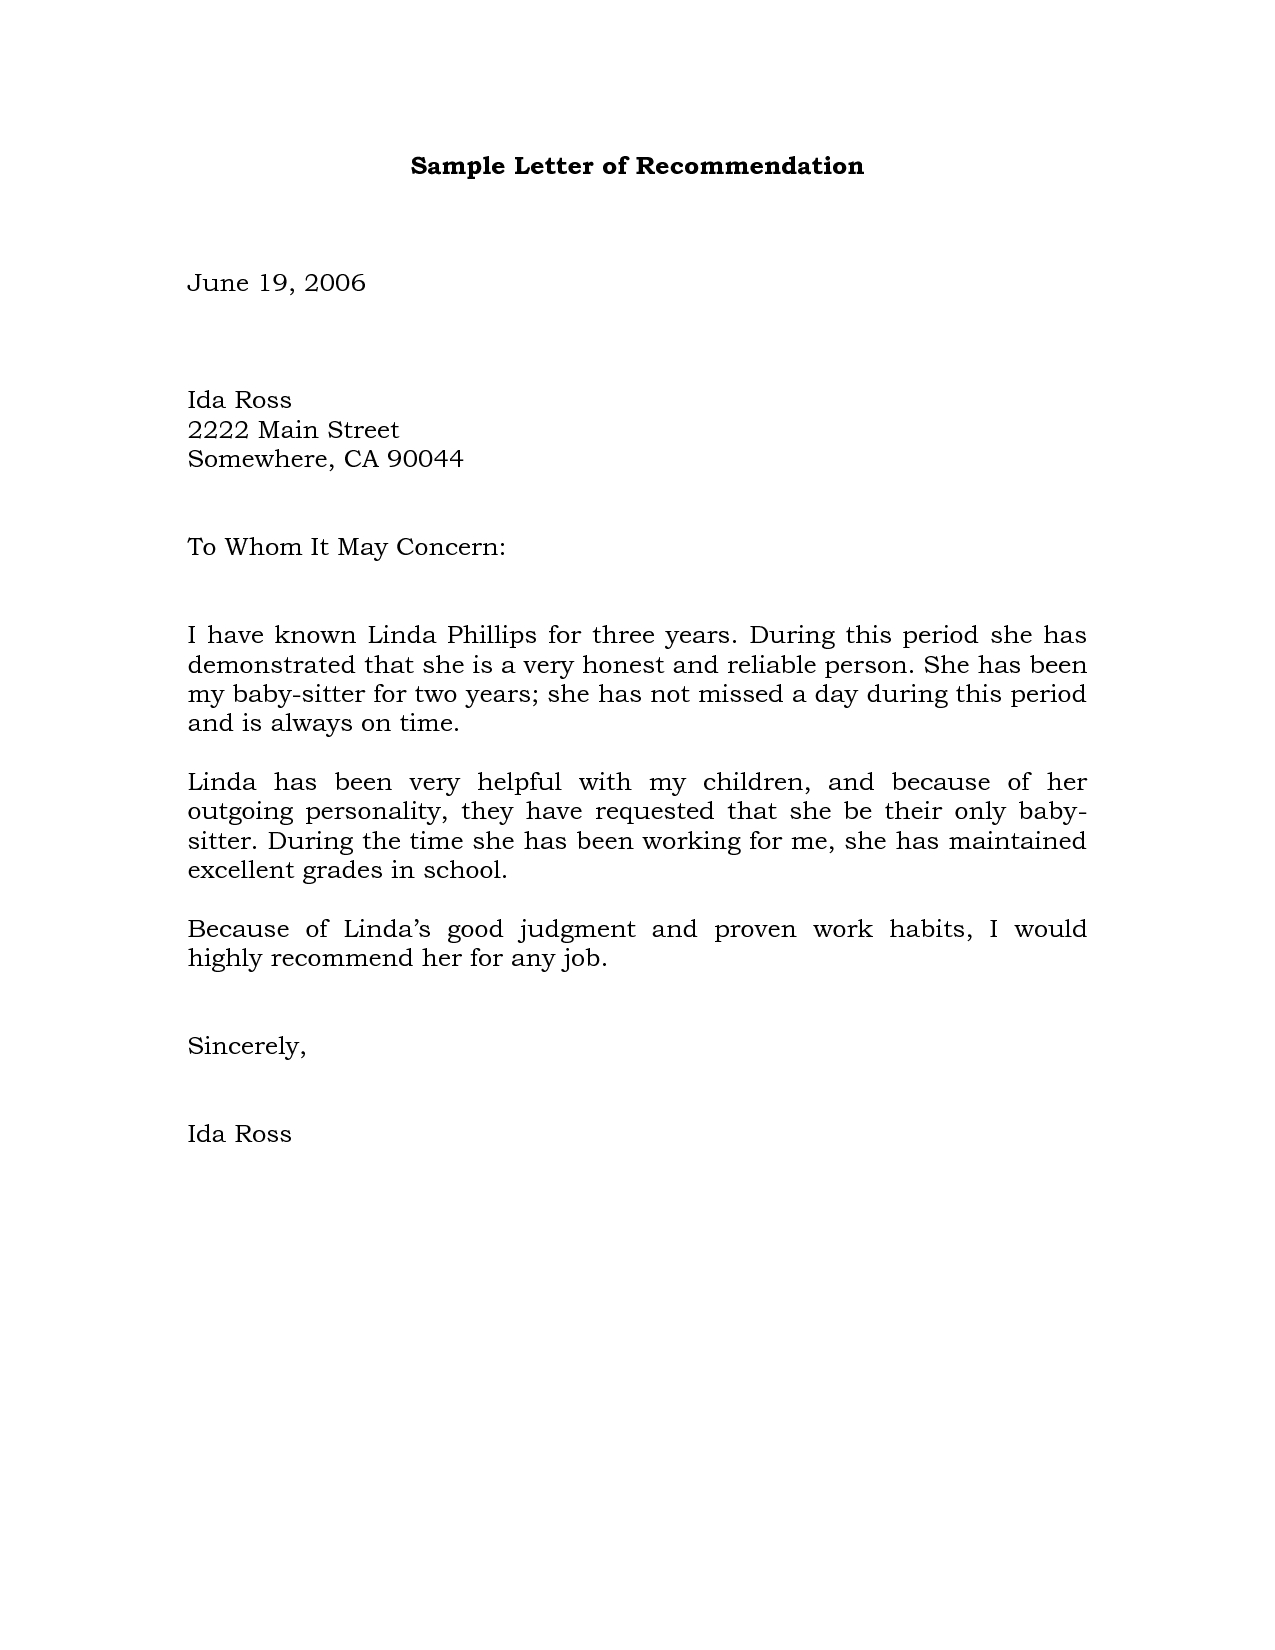 sample letter of recommendation template example-Sample Re mendation Letter Example 18-s